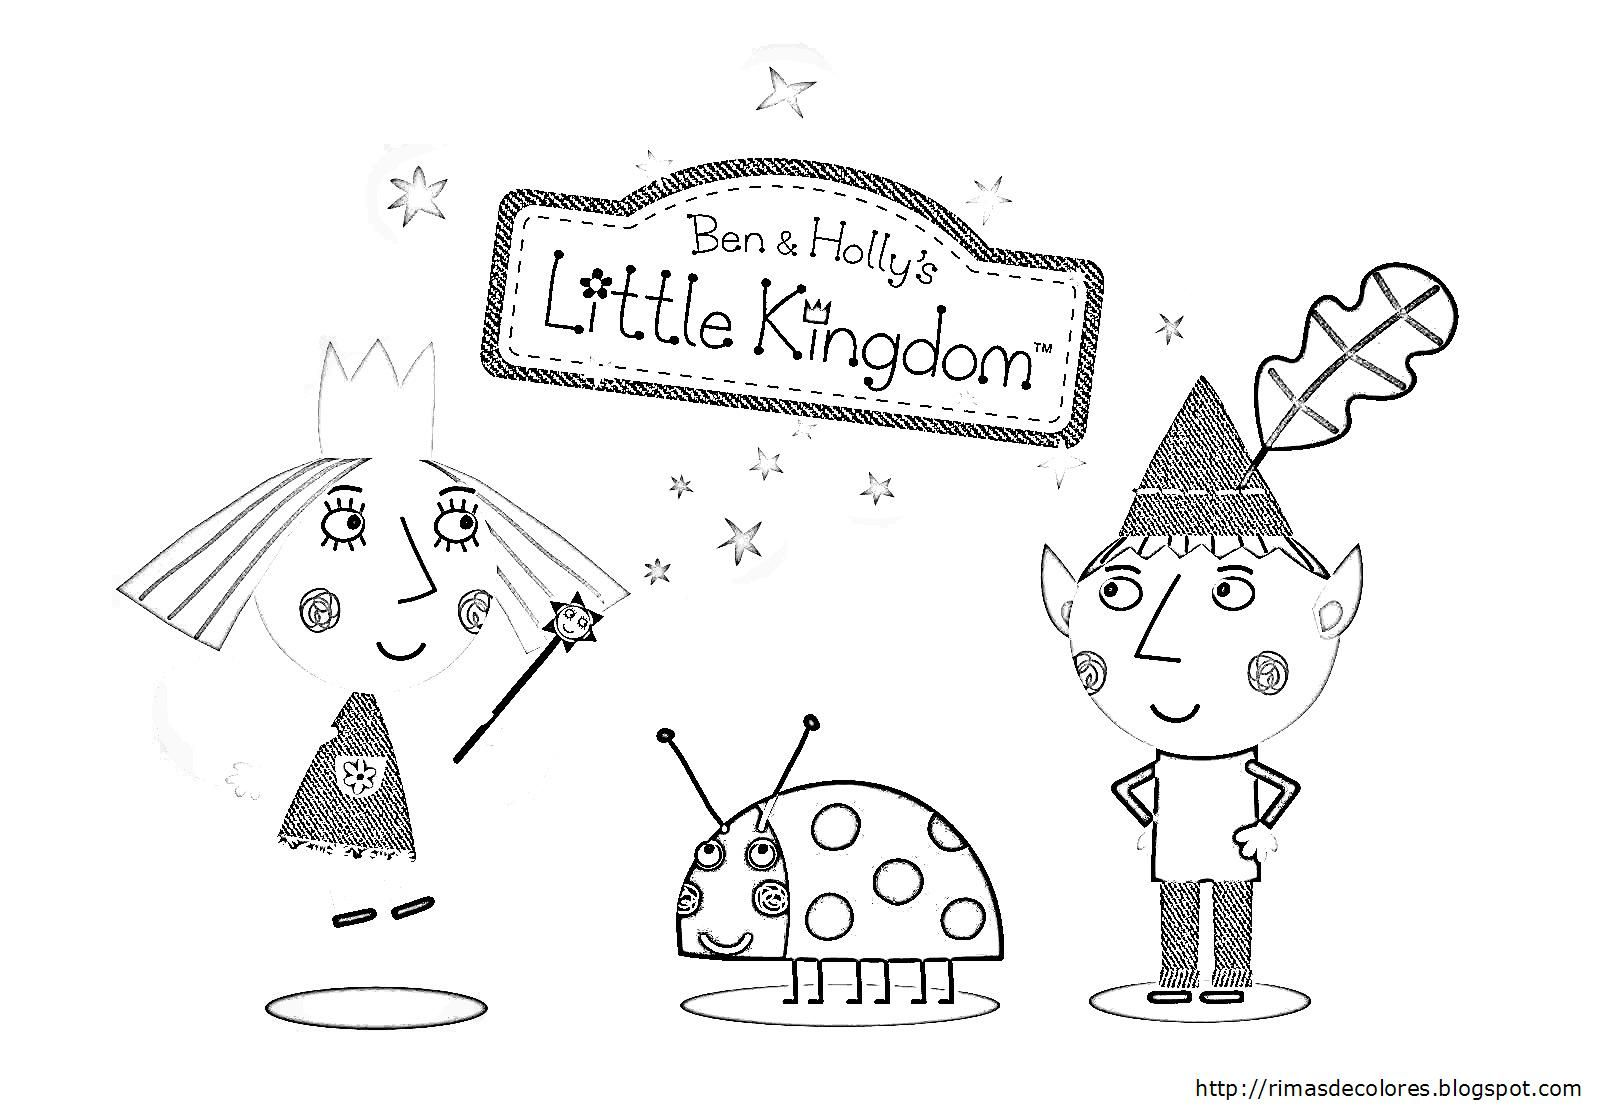 ben and hollys little kingdom free colouring sheets